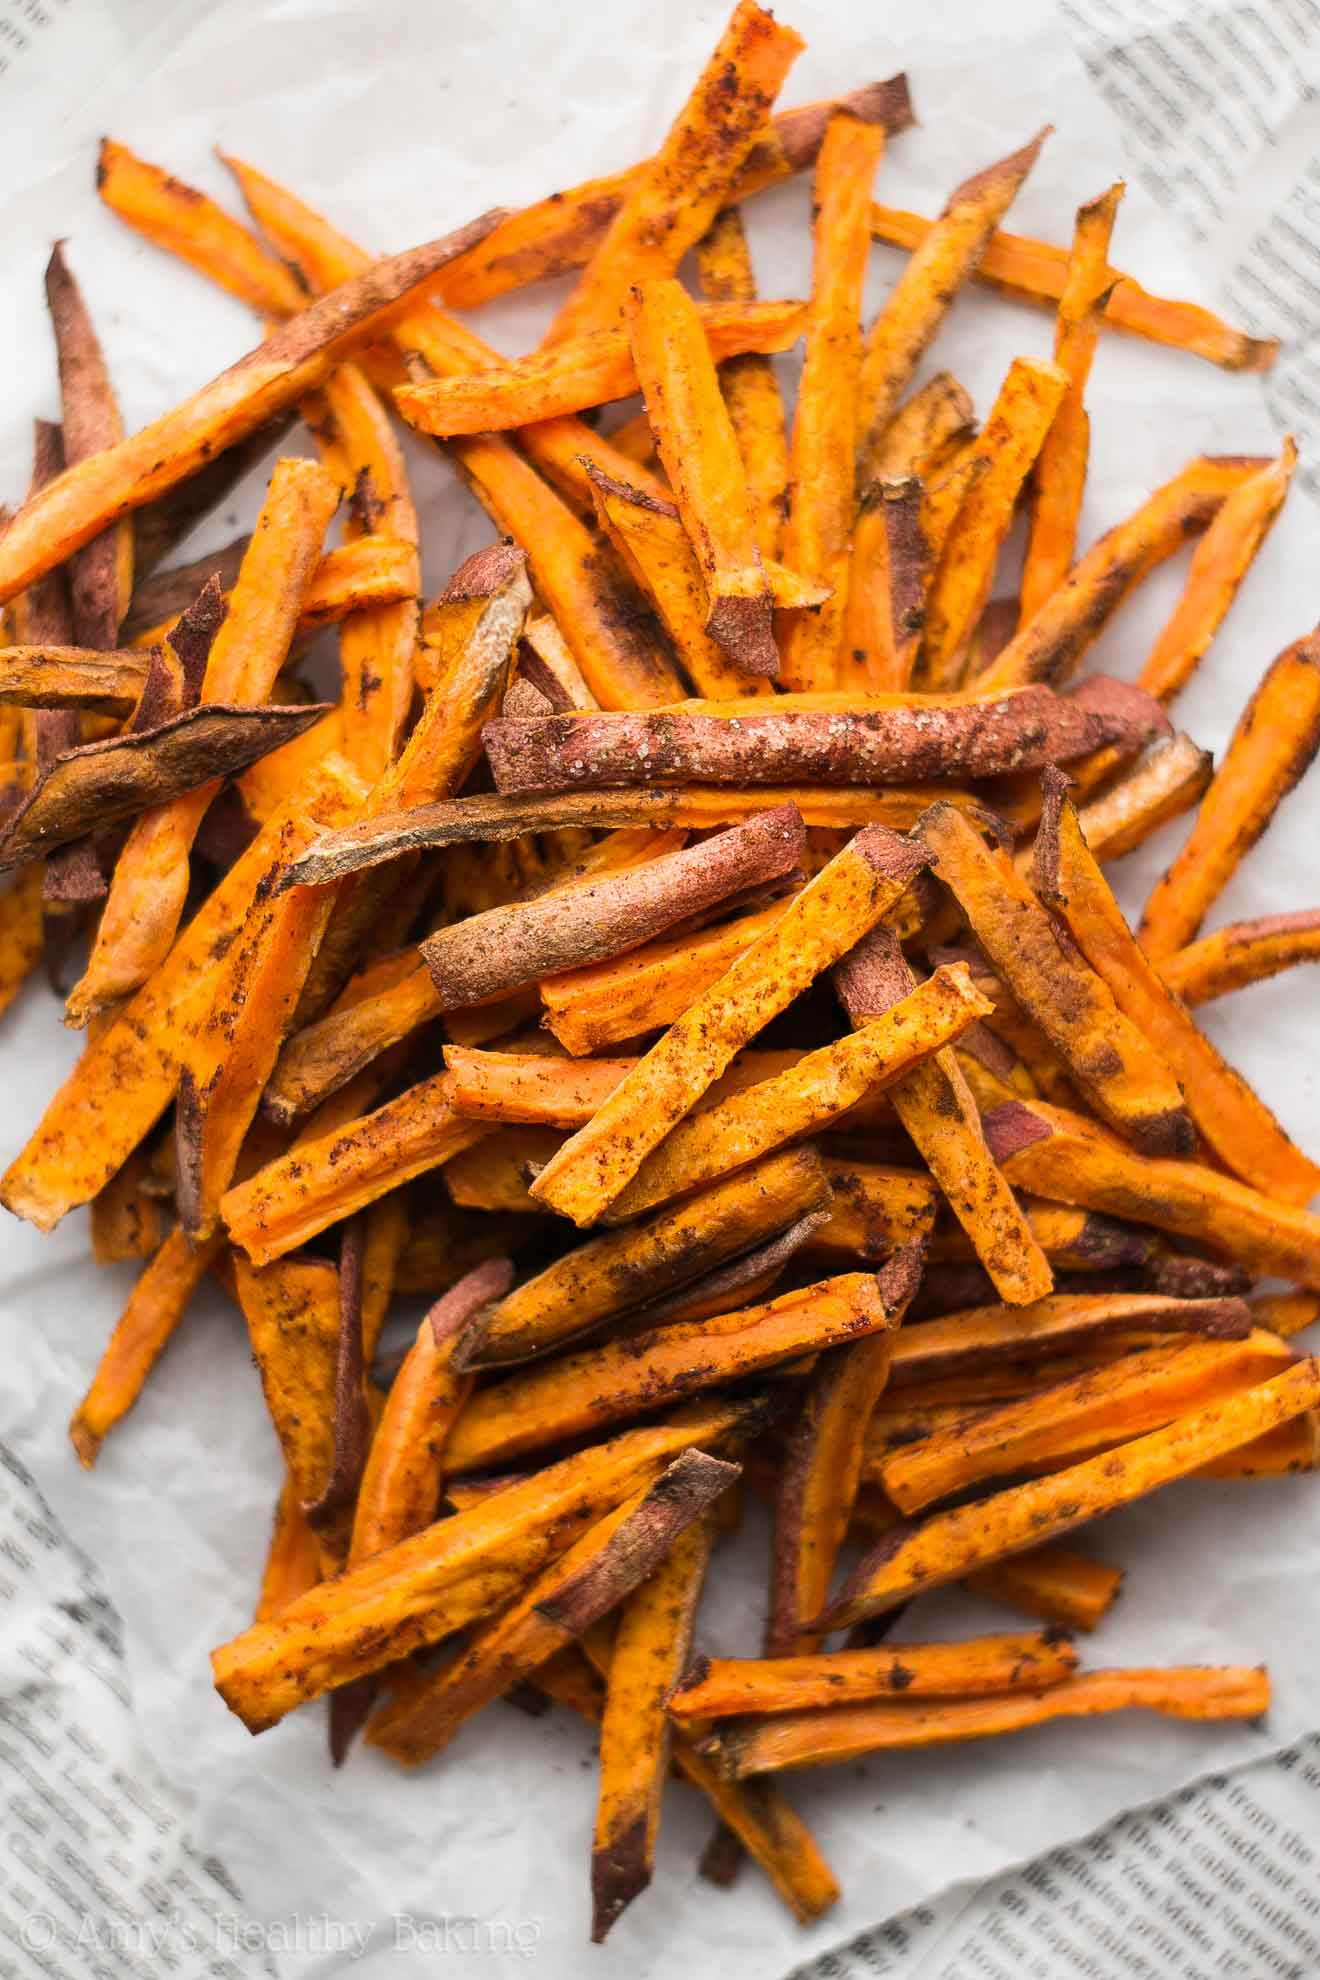 Baked Spicy Cinnamon Sweet Potato Fries Amy S Healthy Baking